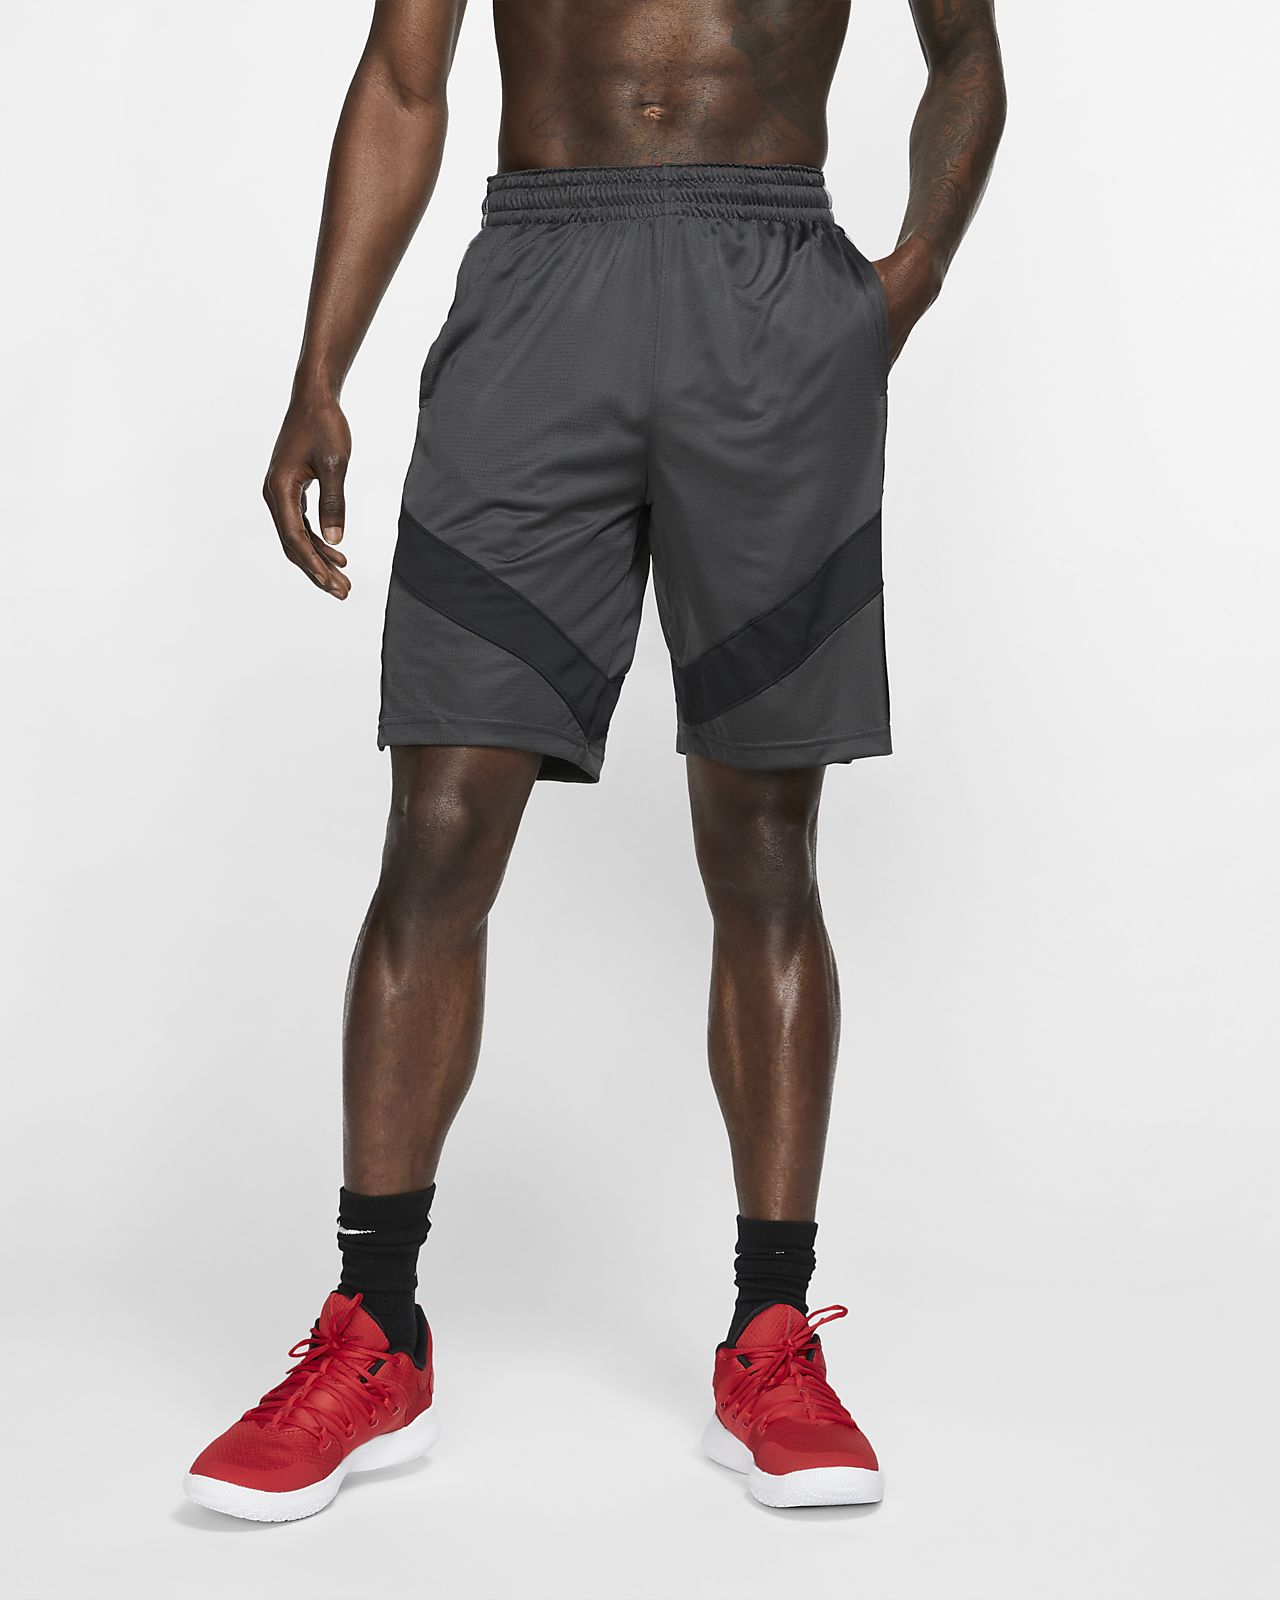 Nike Dri FIT Courtlines Men's Printed Basketball Shorts